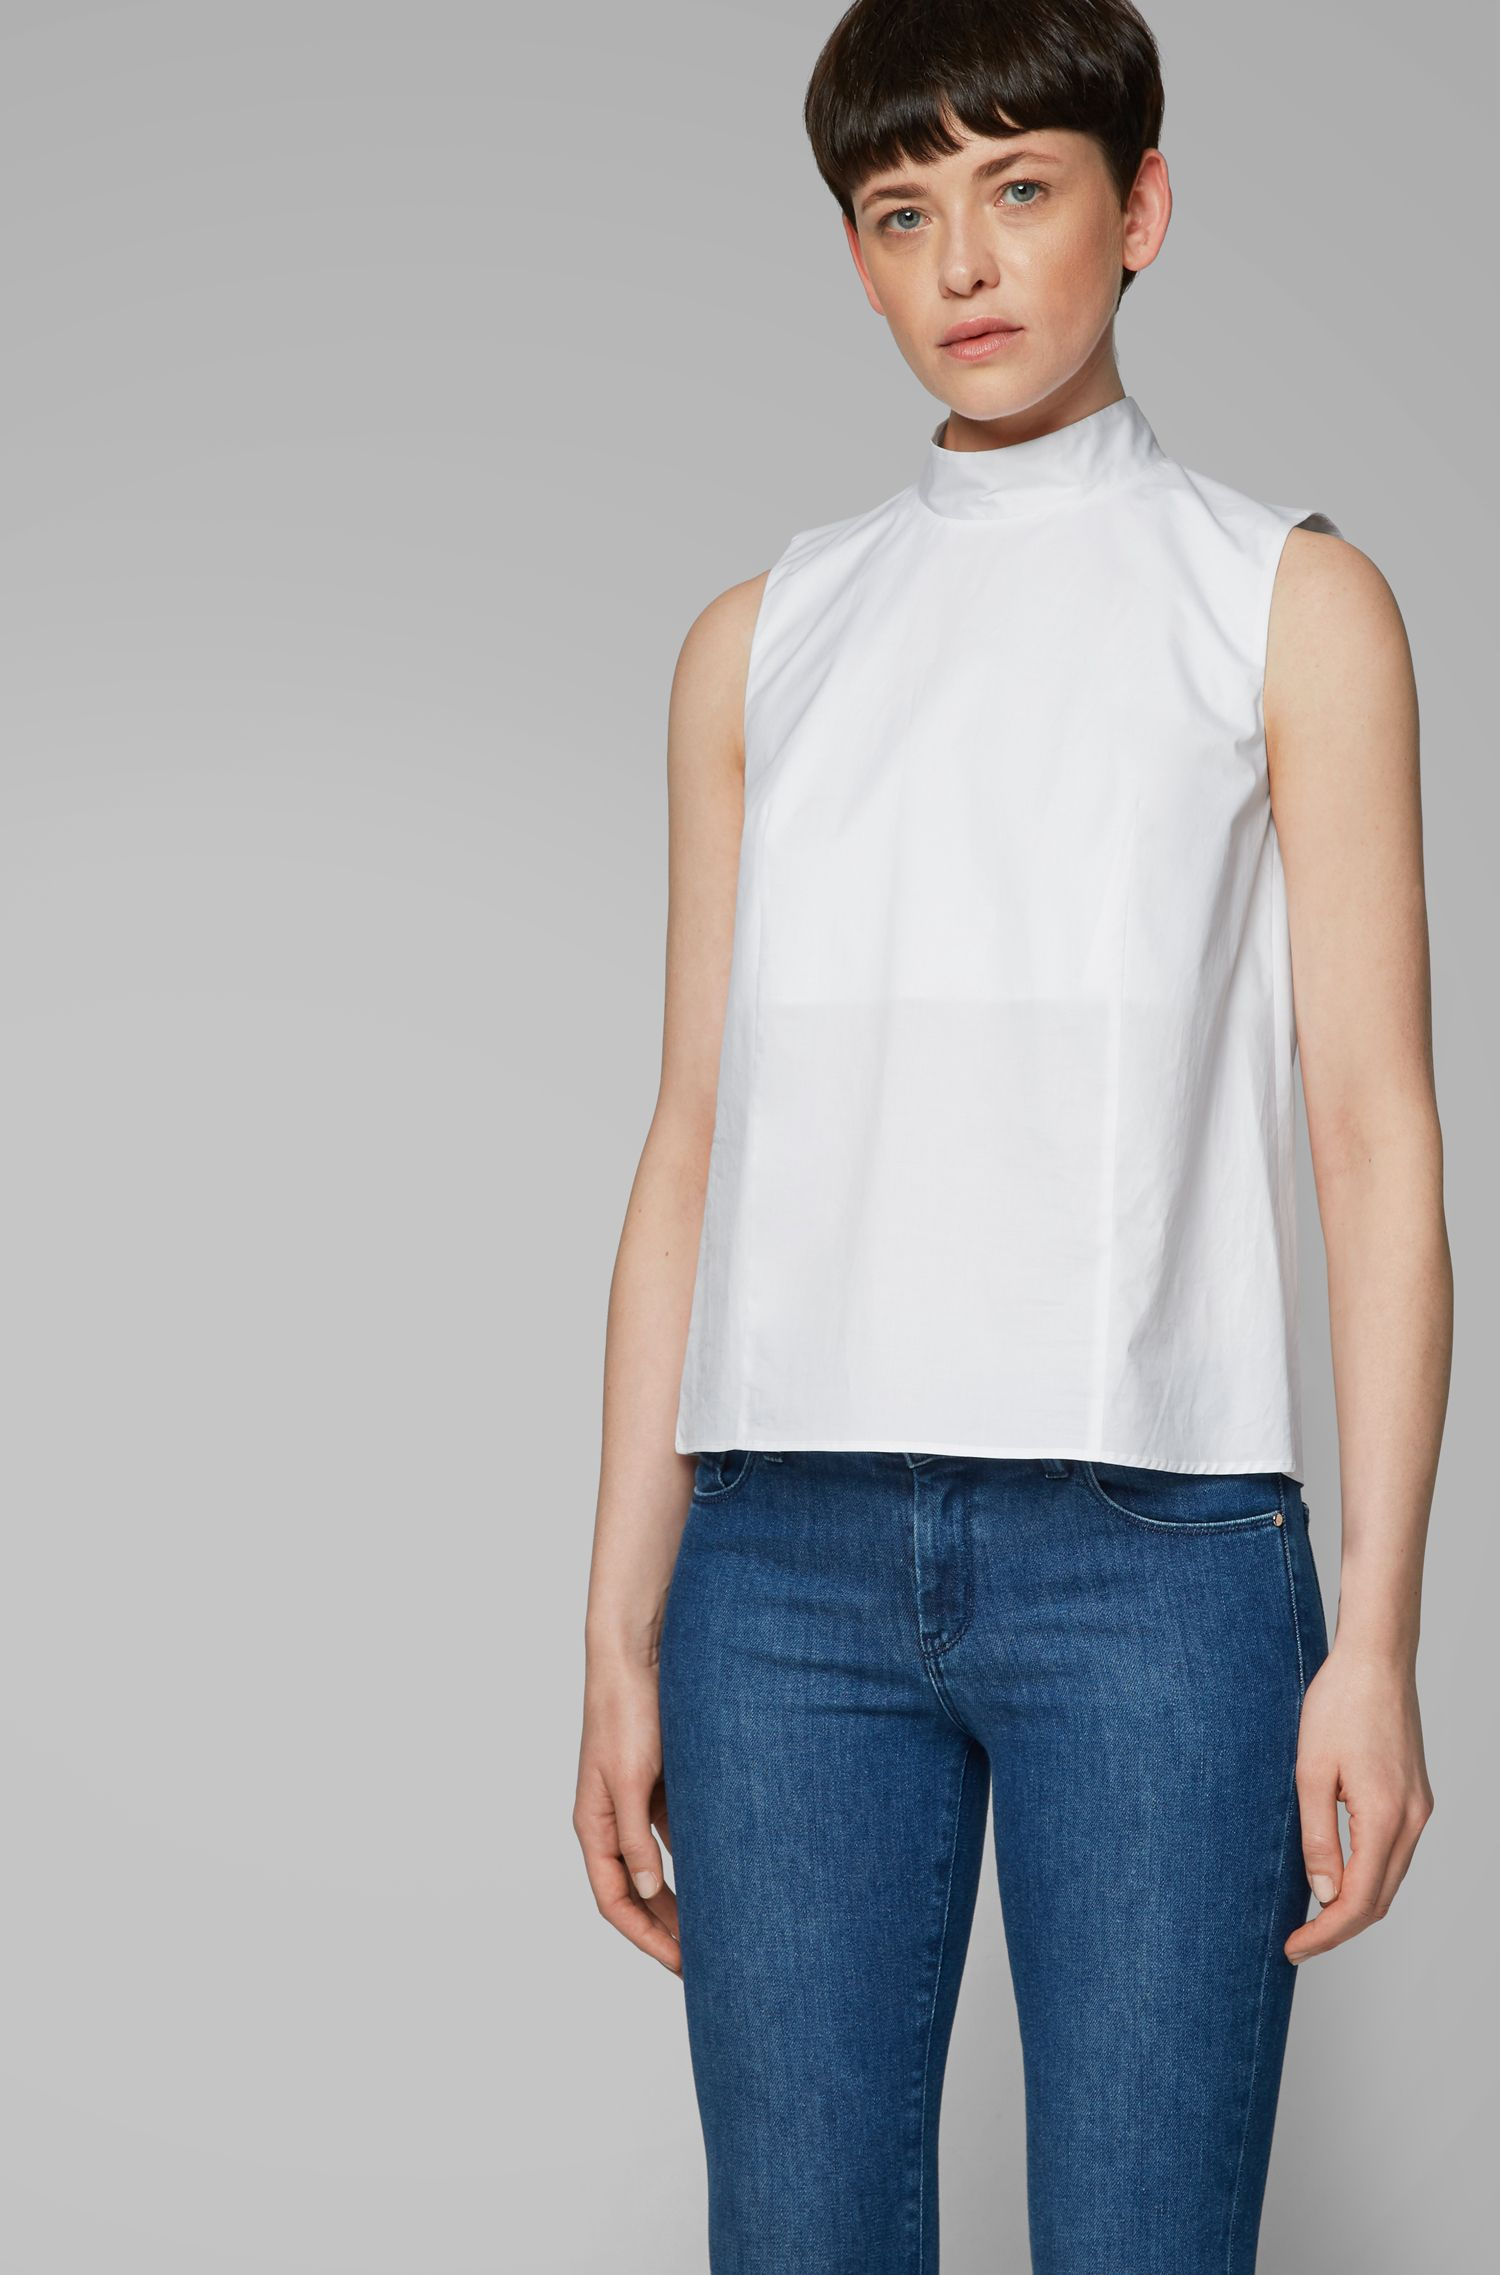 Sleeveless top in paper-touch stretch cotton, White